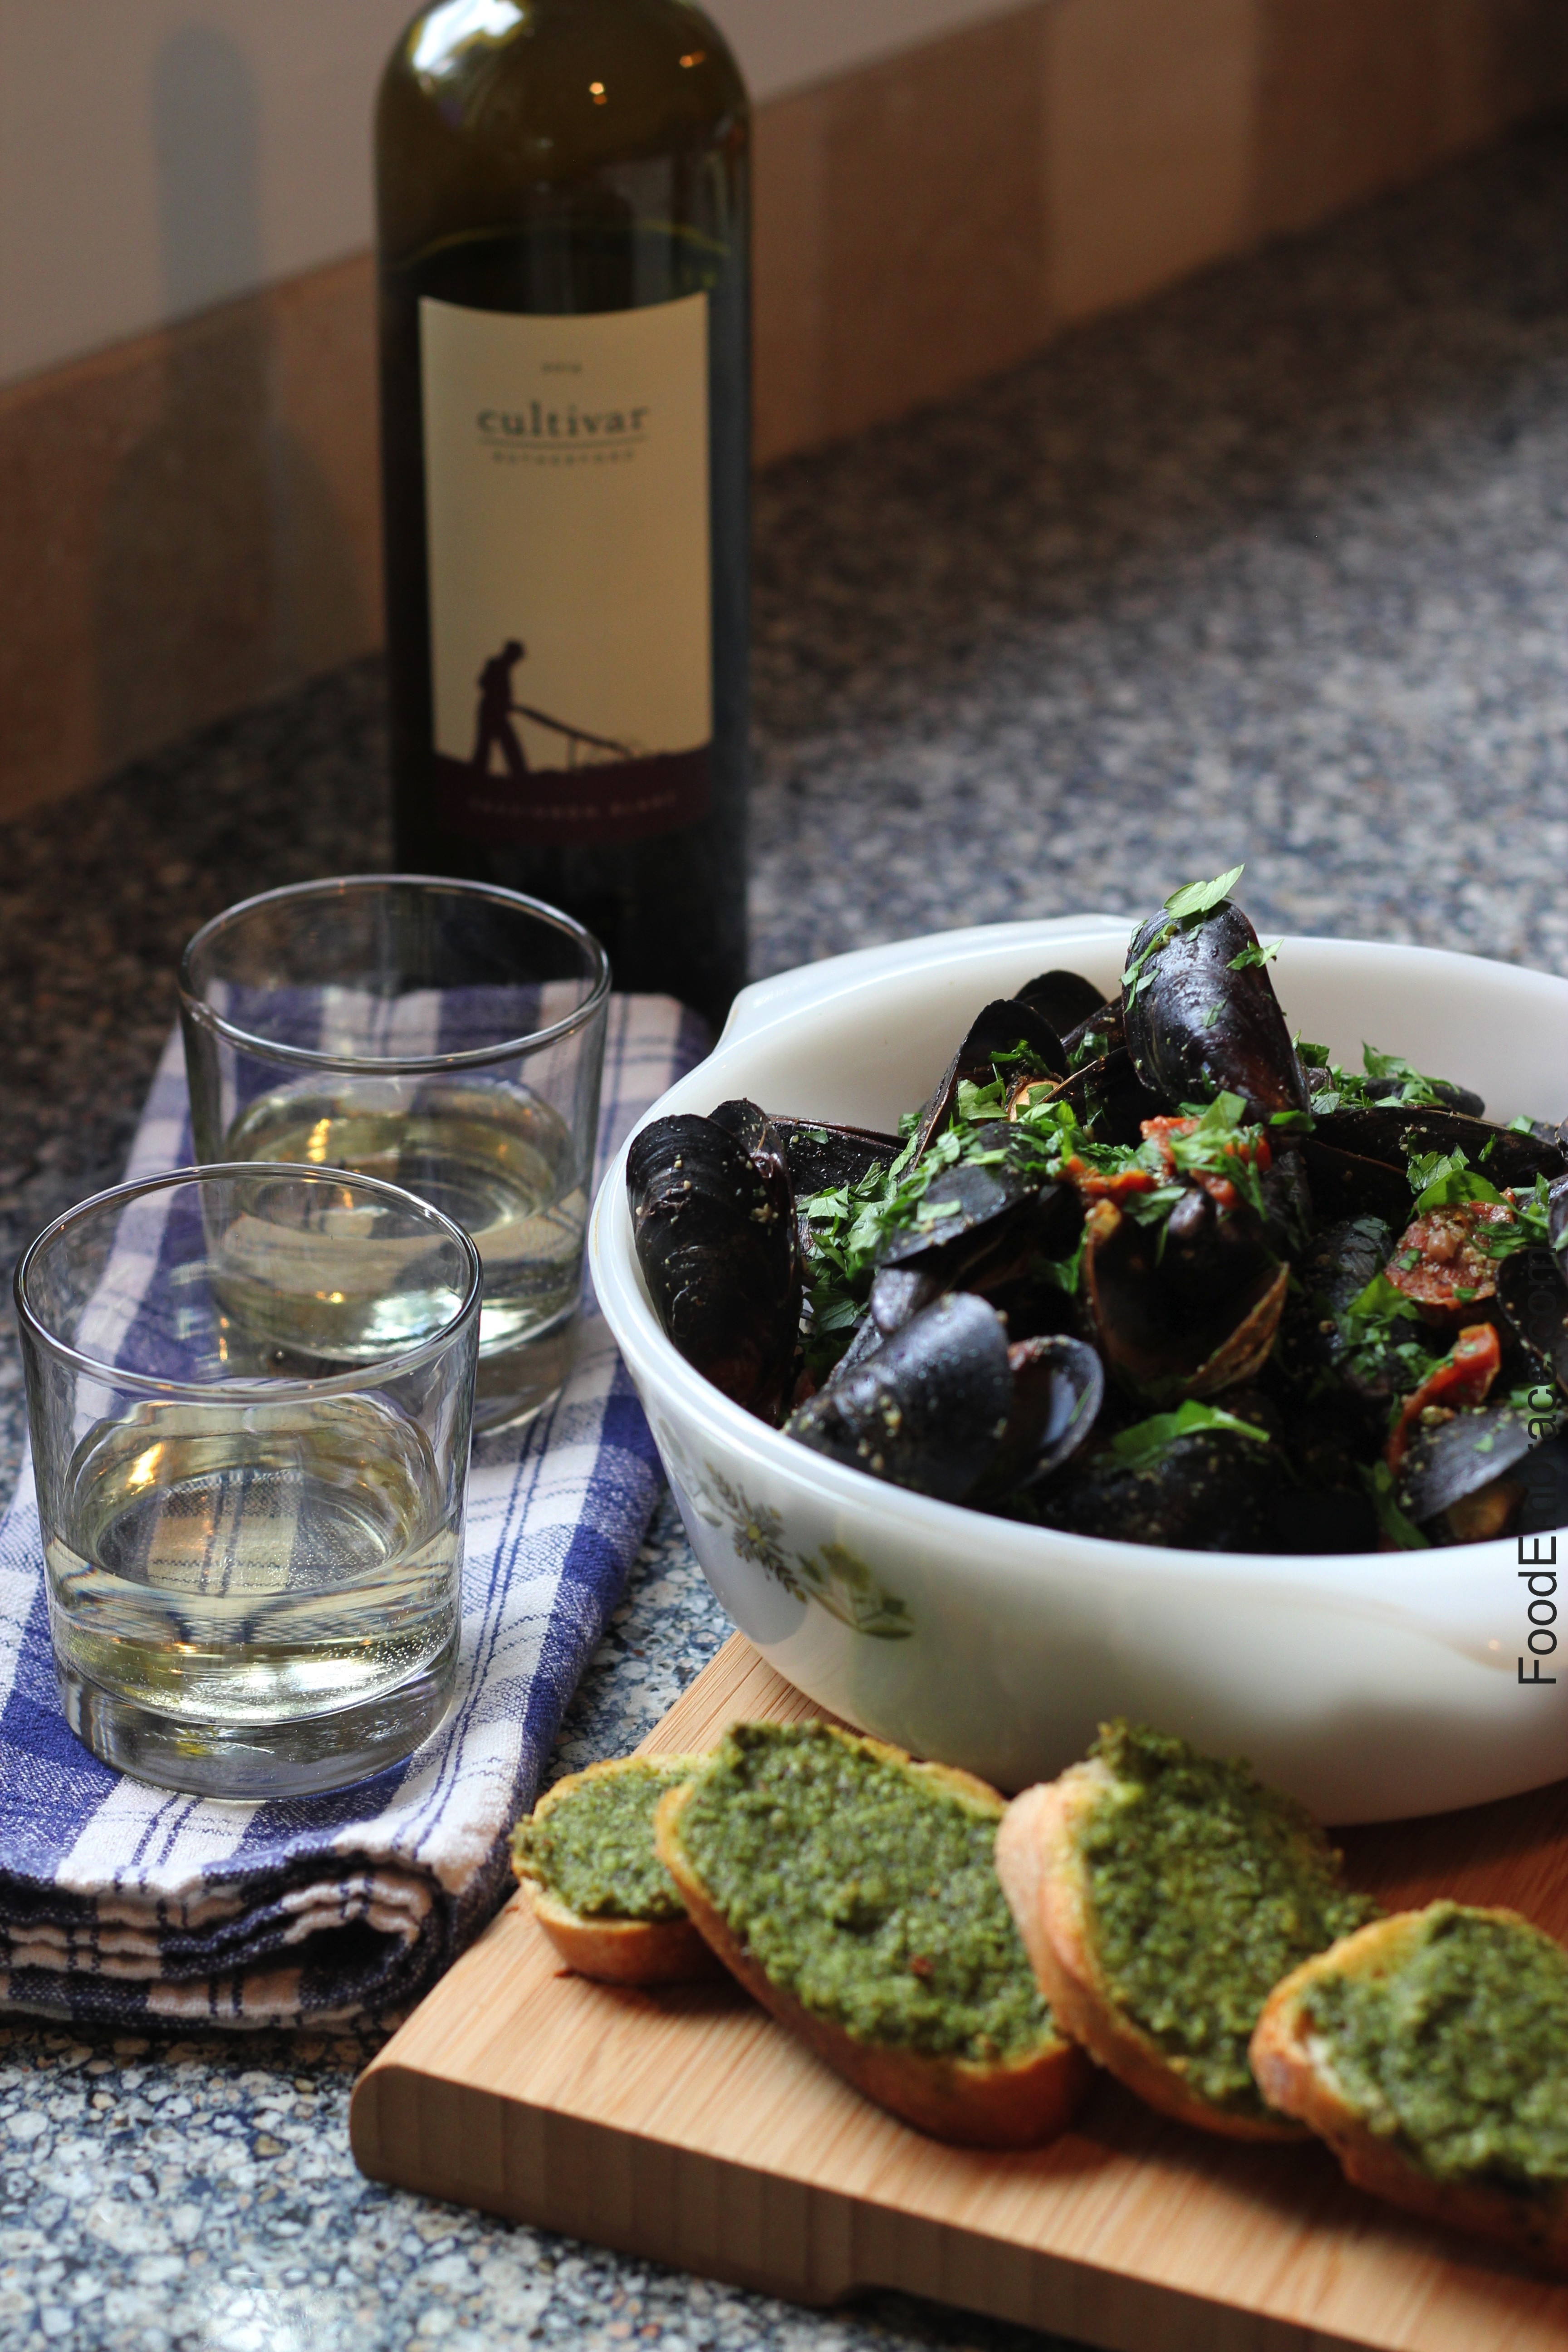 Mussels with 2014 Cultivar Rutherford Sauvignon Blanc